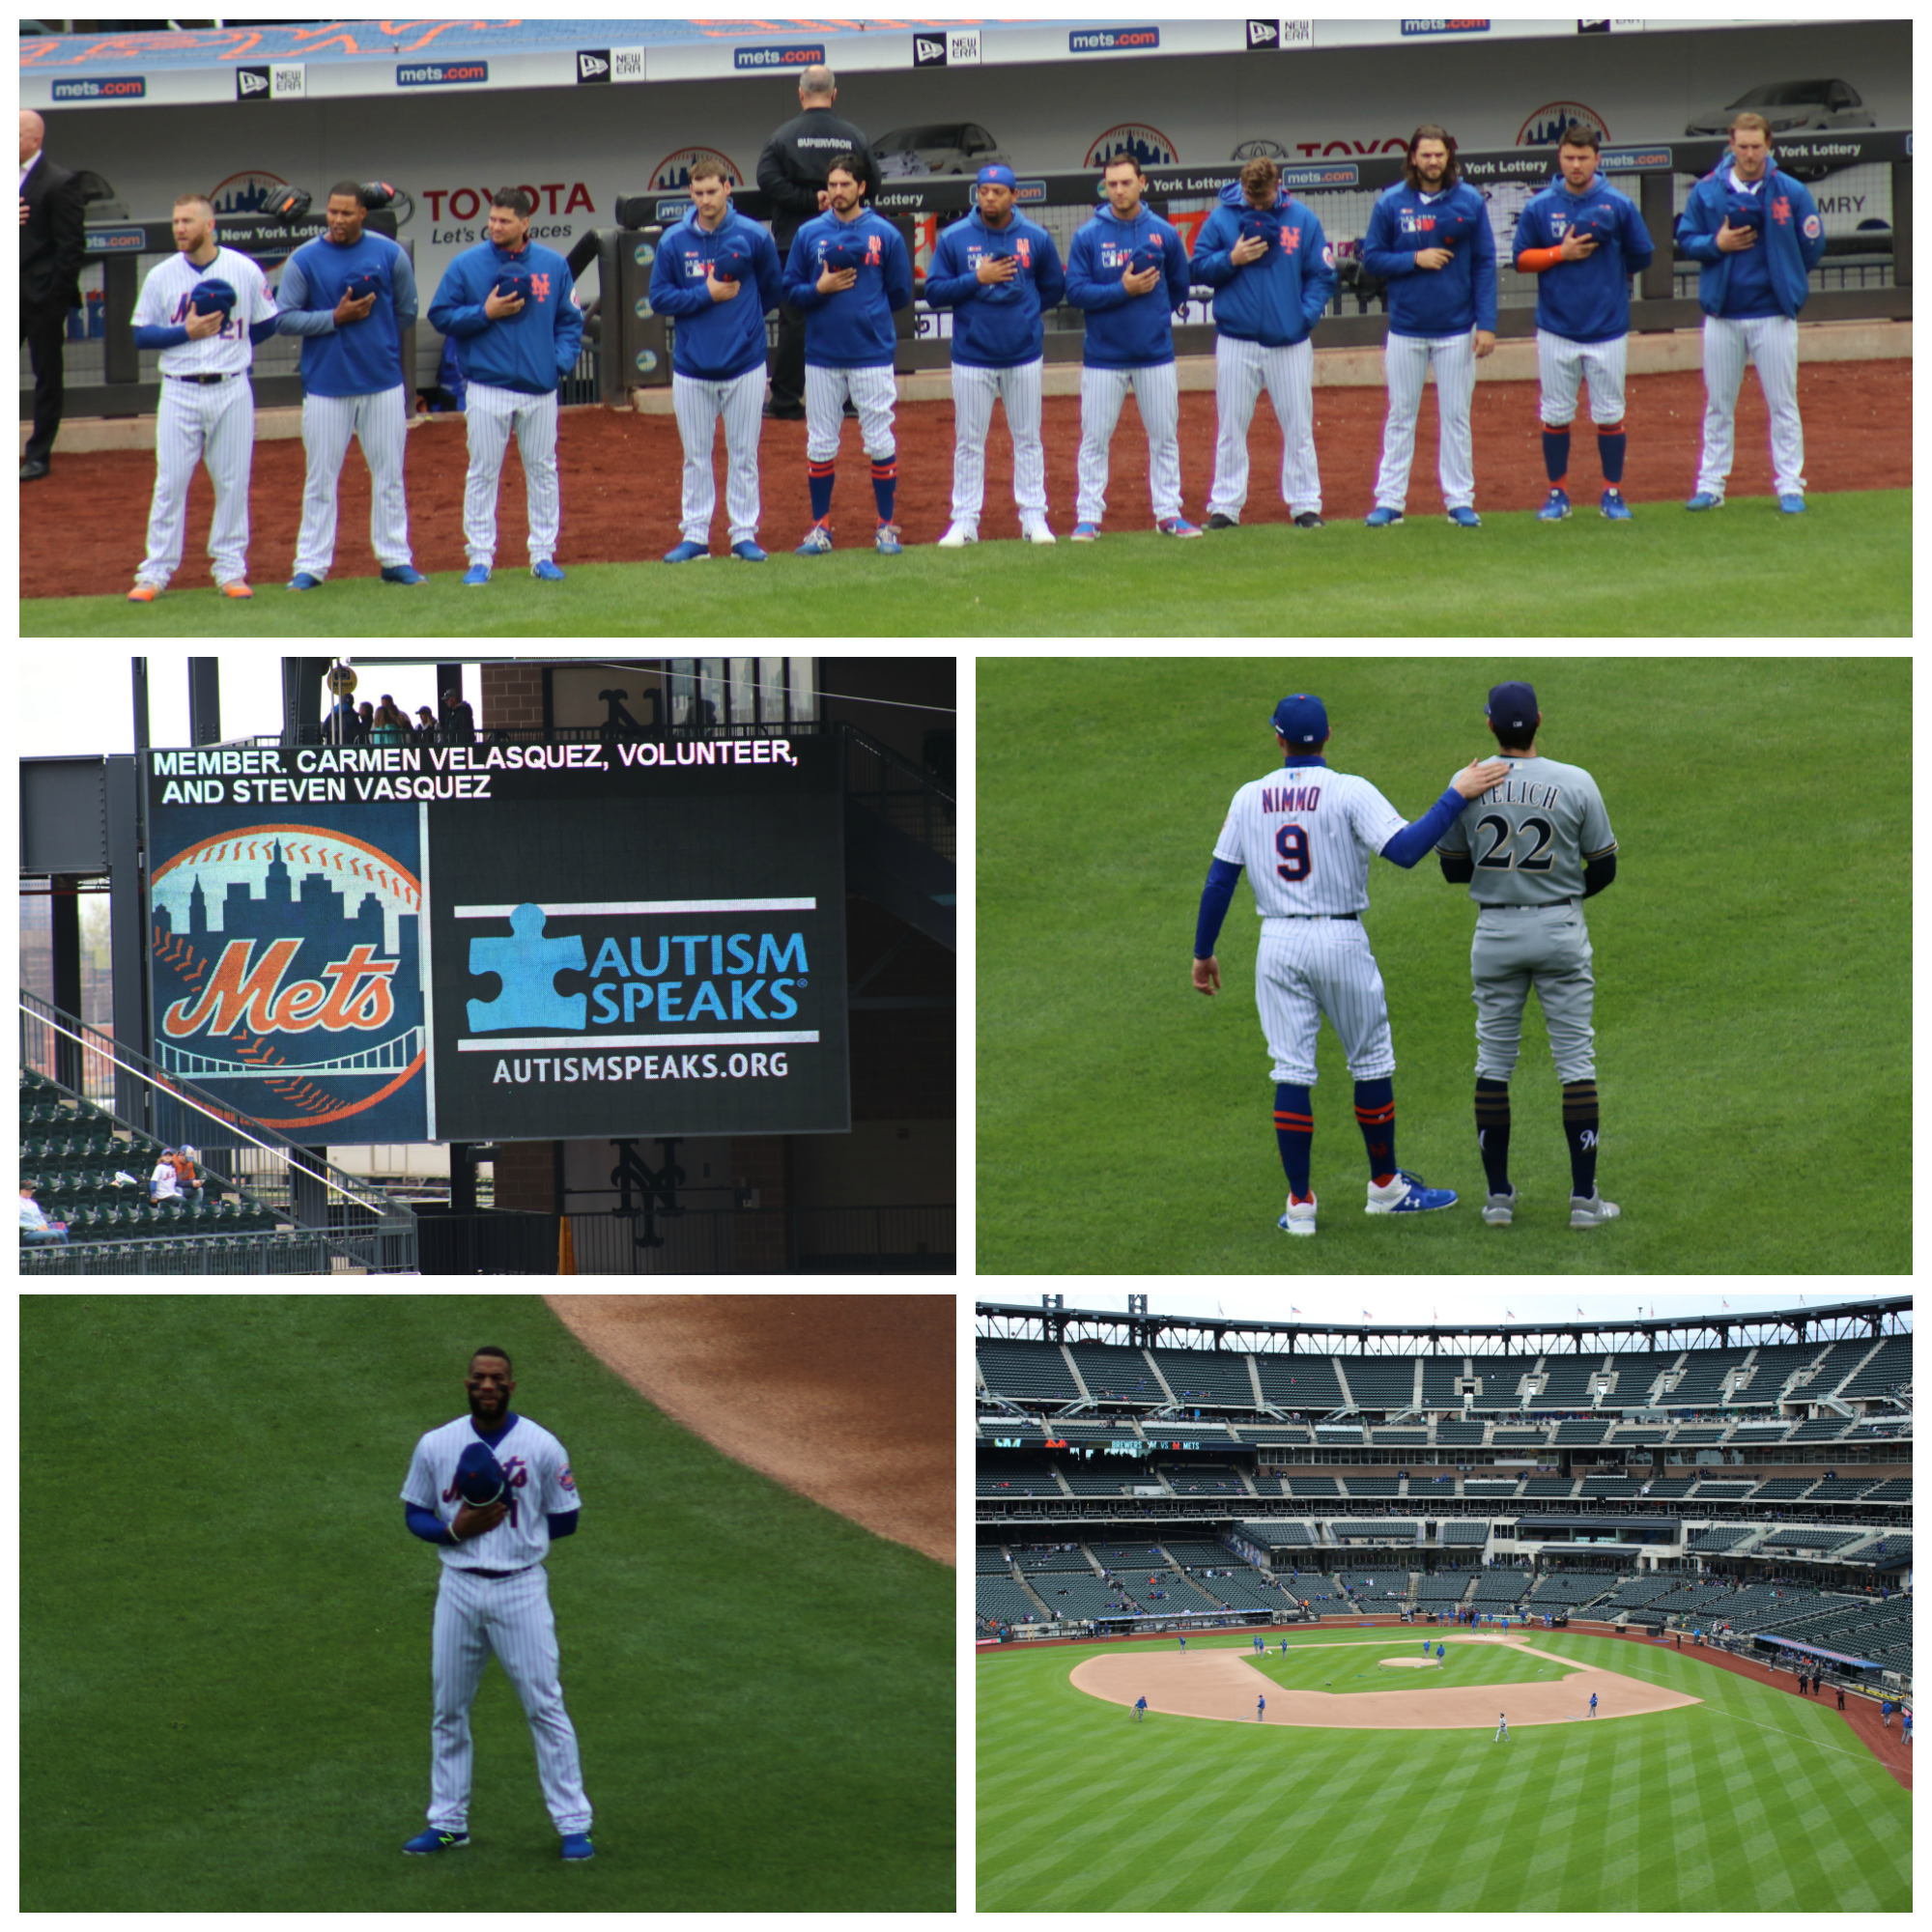 Collage of Mets players and Citi Field